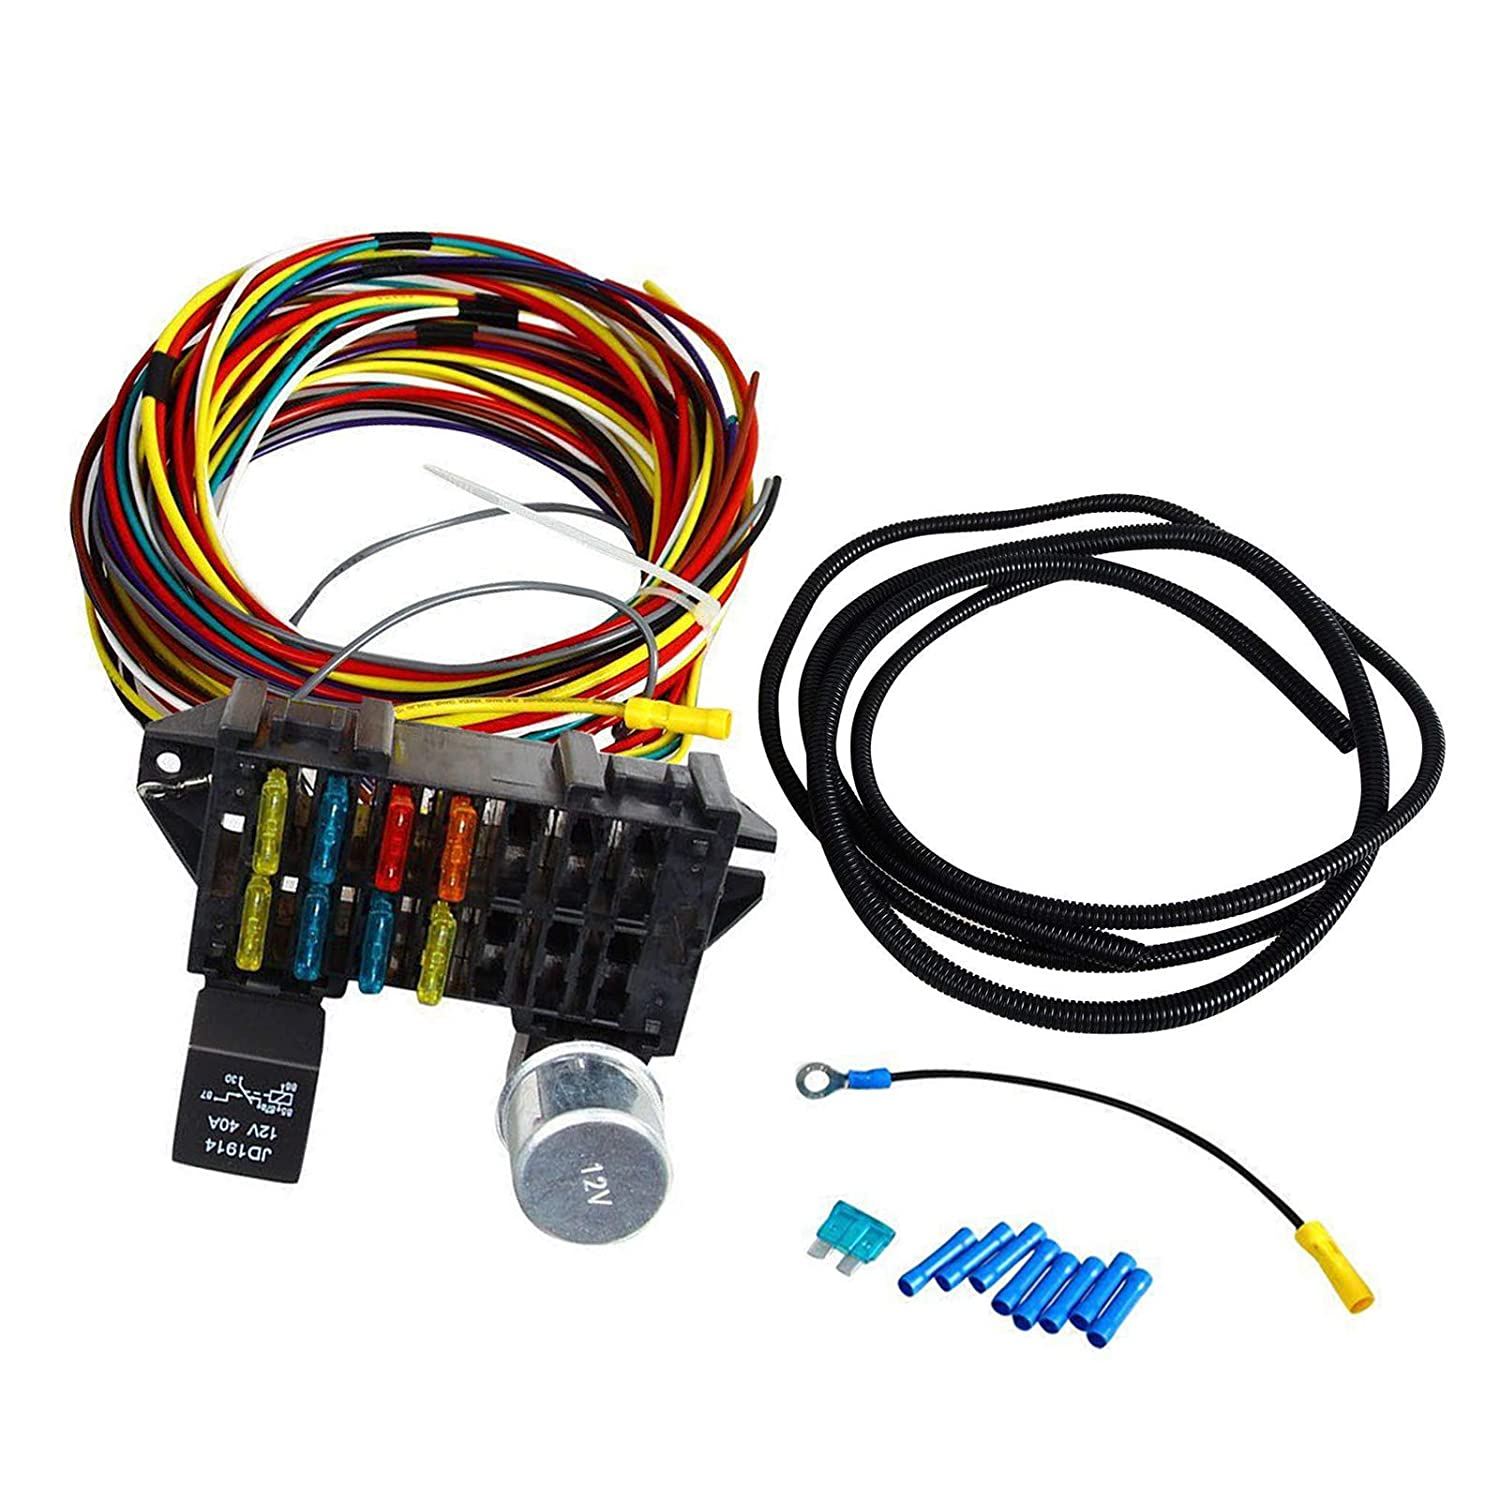 Rat Rod Wiring Harness - Wiring Diagram Value Universal Hot Rod Wiring Harness on universal painless wiring harness, universal hot rod motor mounts, universal gm wiring harness, universal wiring harness diagram, universal hot water heaters for cars, universal wiring harness kit, universal hot rod mirrors,